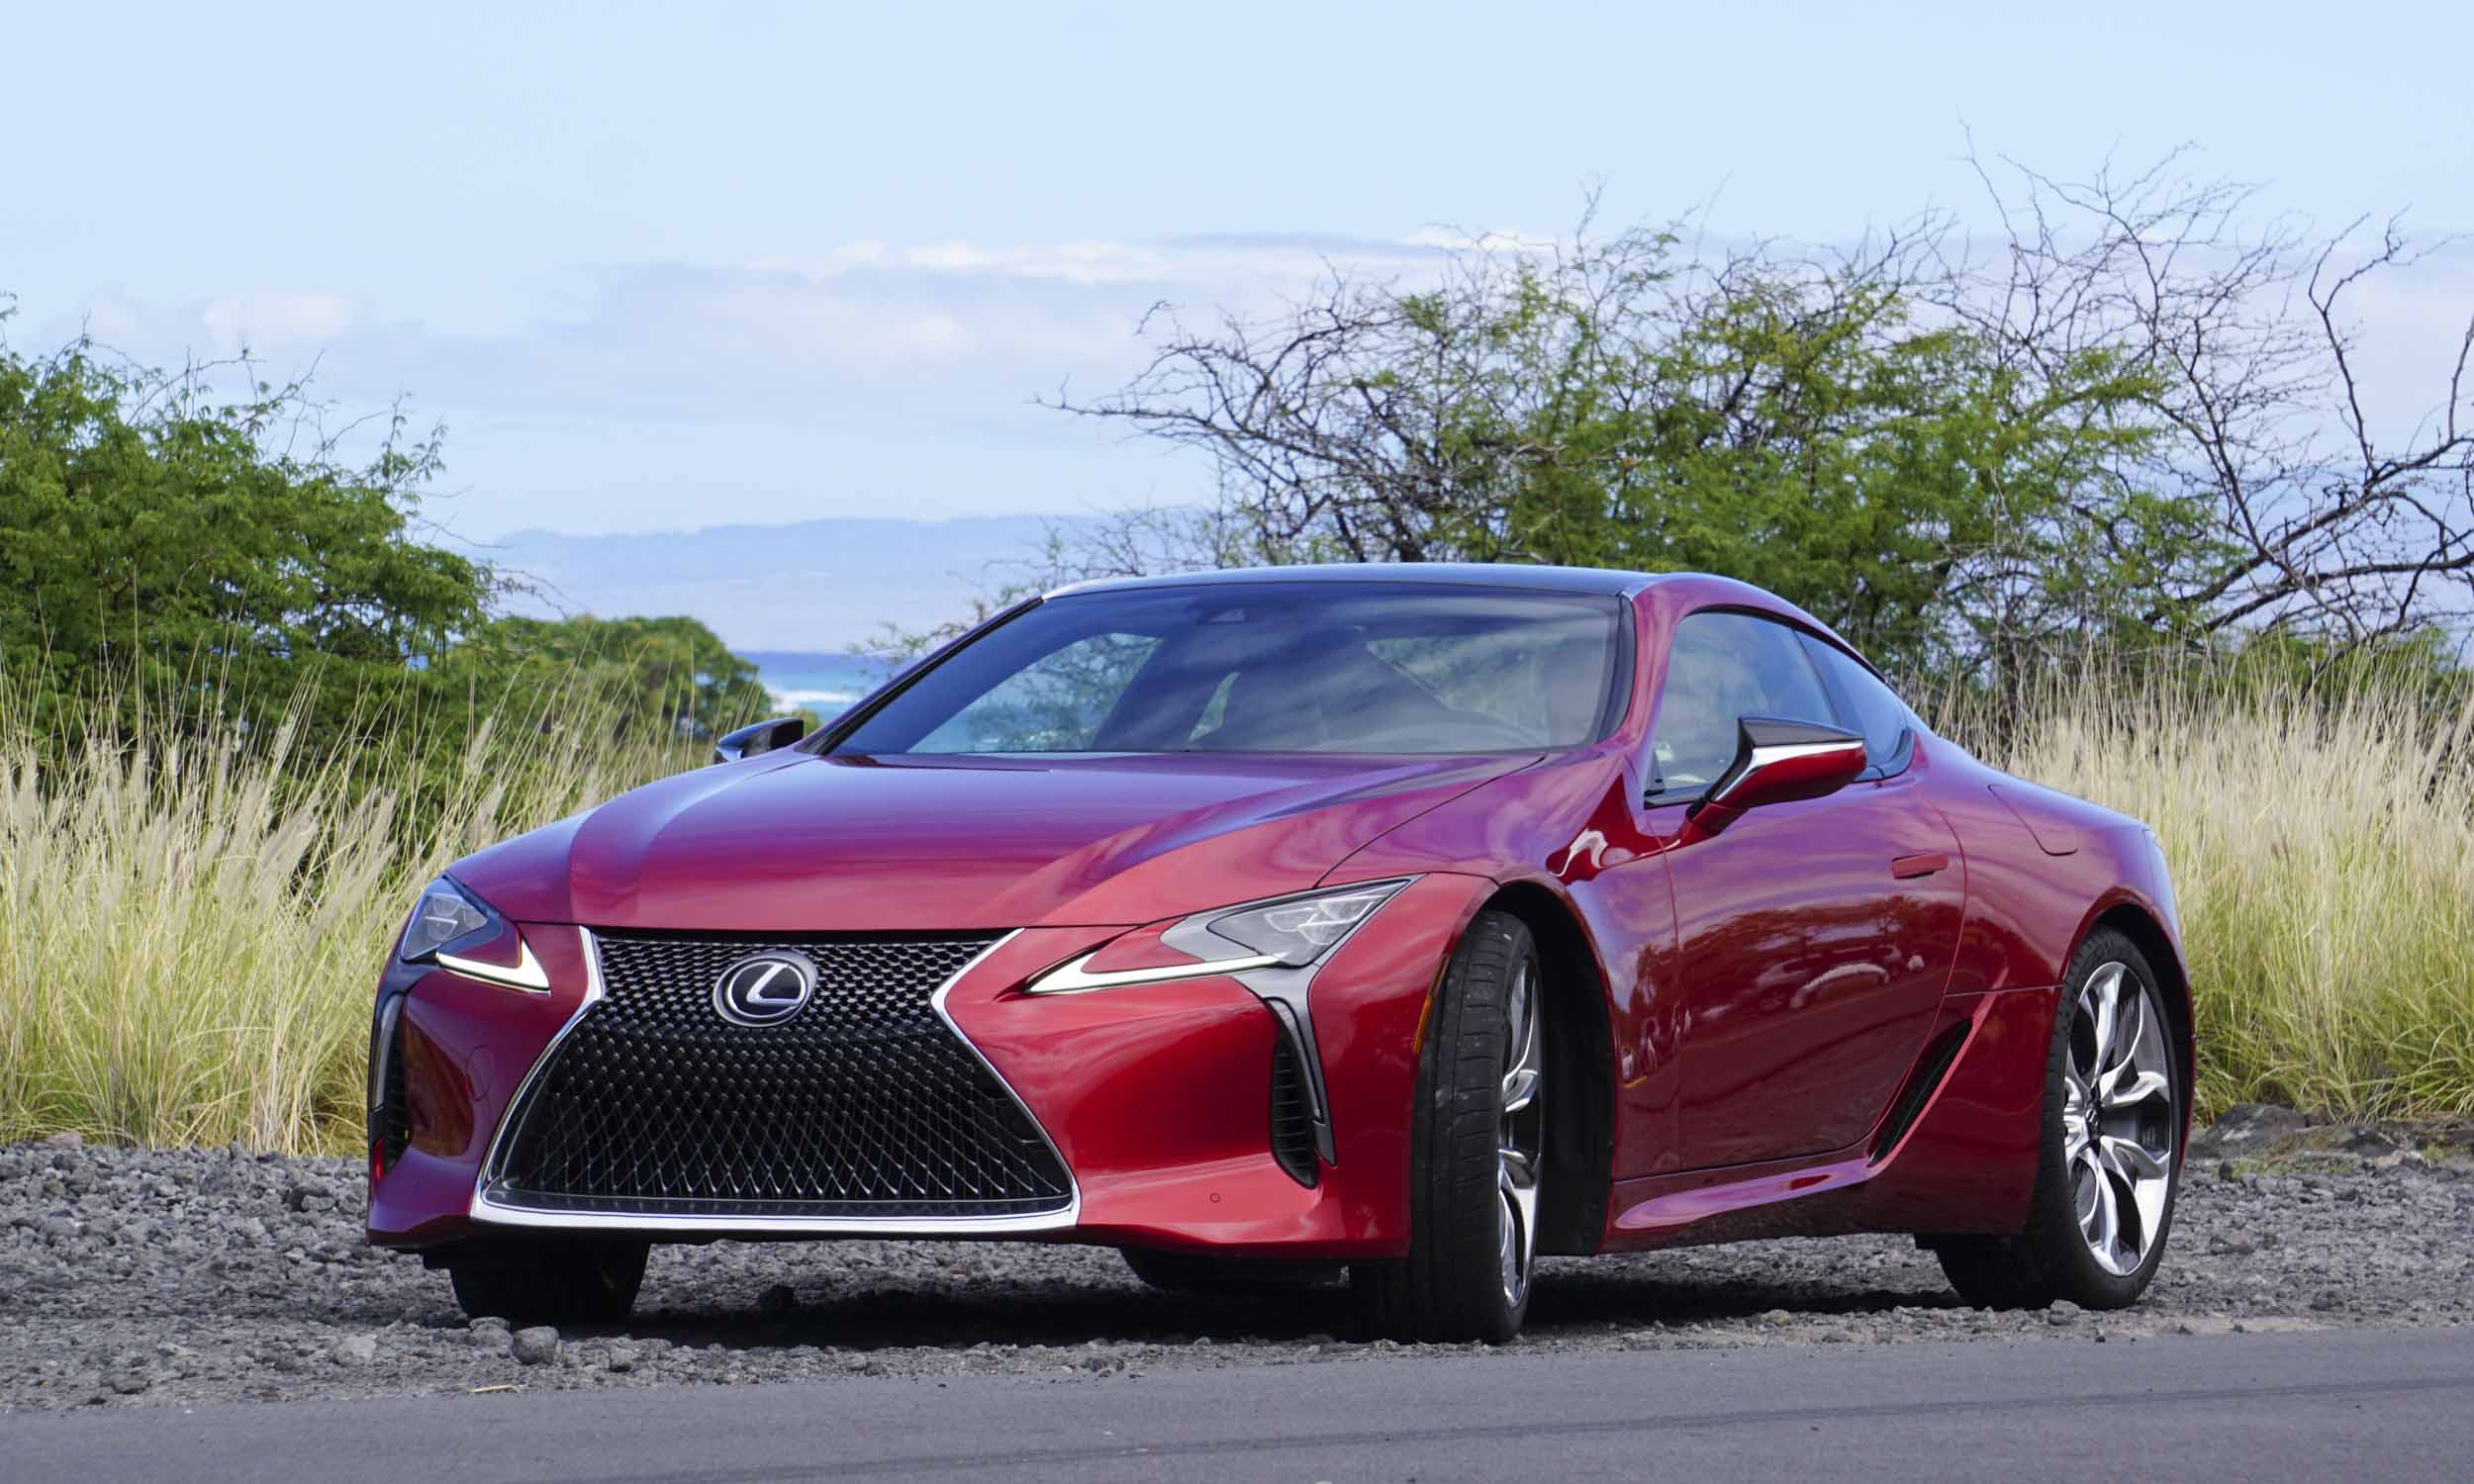 2018 Lexus Lc 500 First Drive Review 187 Autonxt